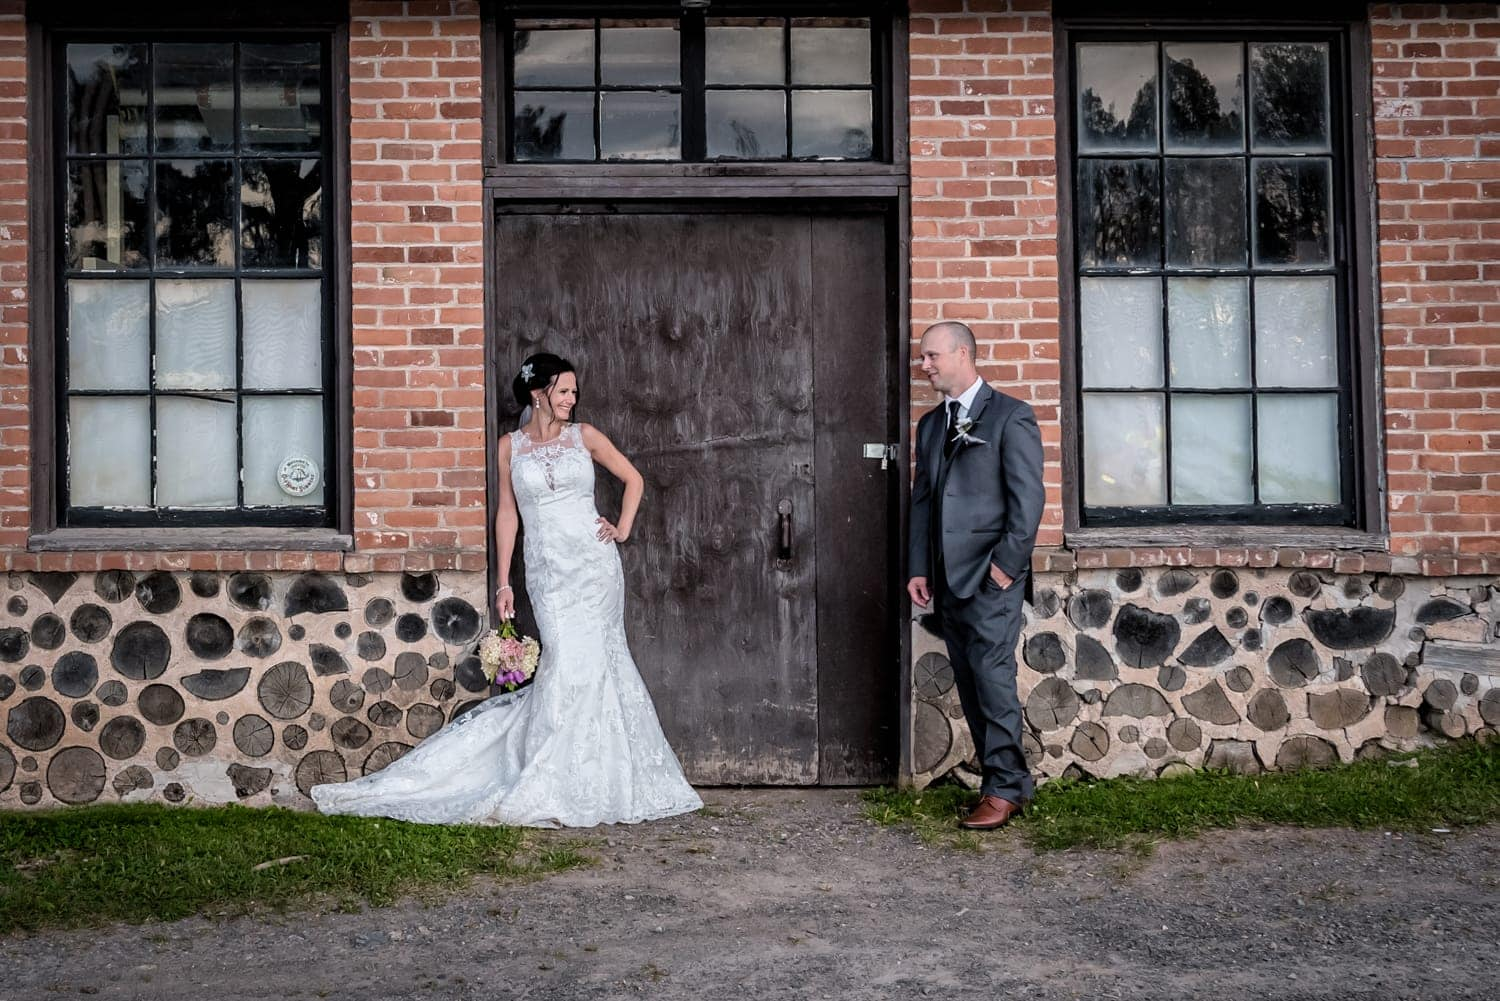 The bride and groom wedding photos, they are standing against the wooden doors of an urban brick style building at the Old Orchard Inn.